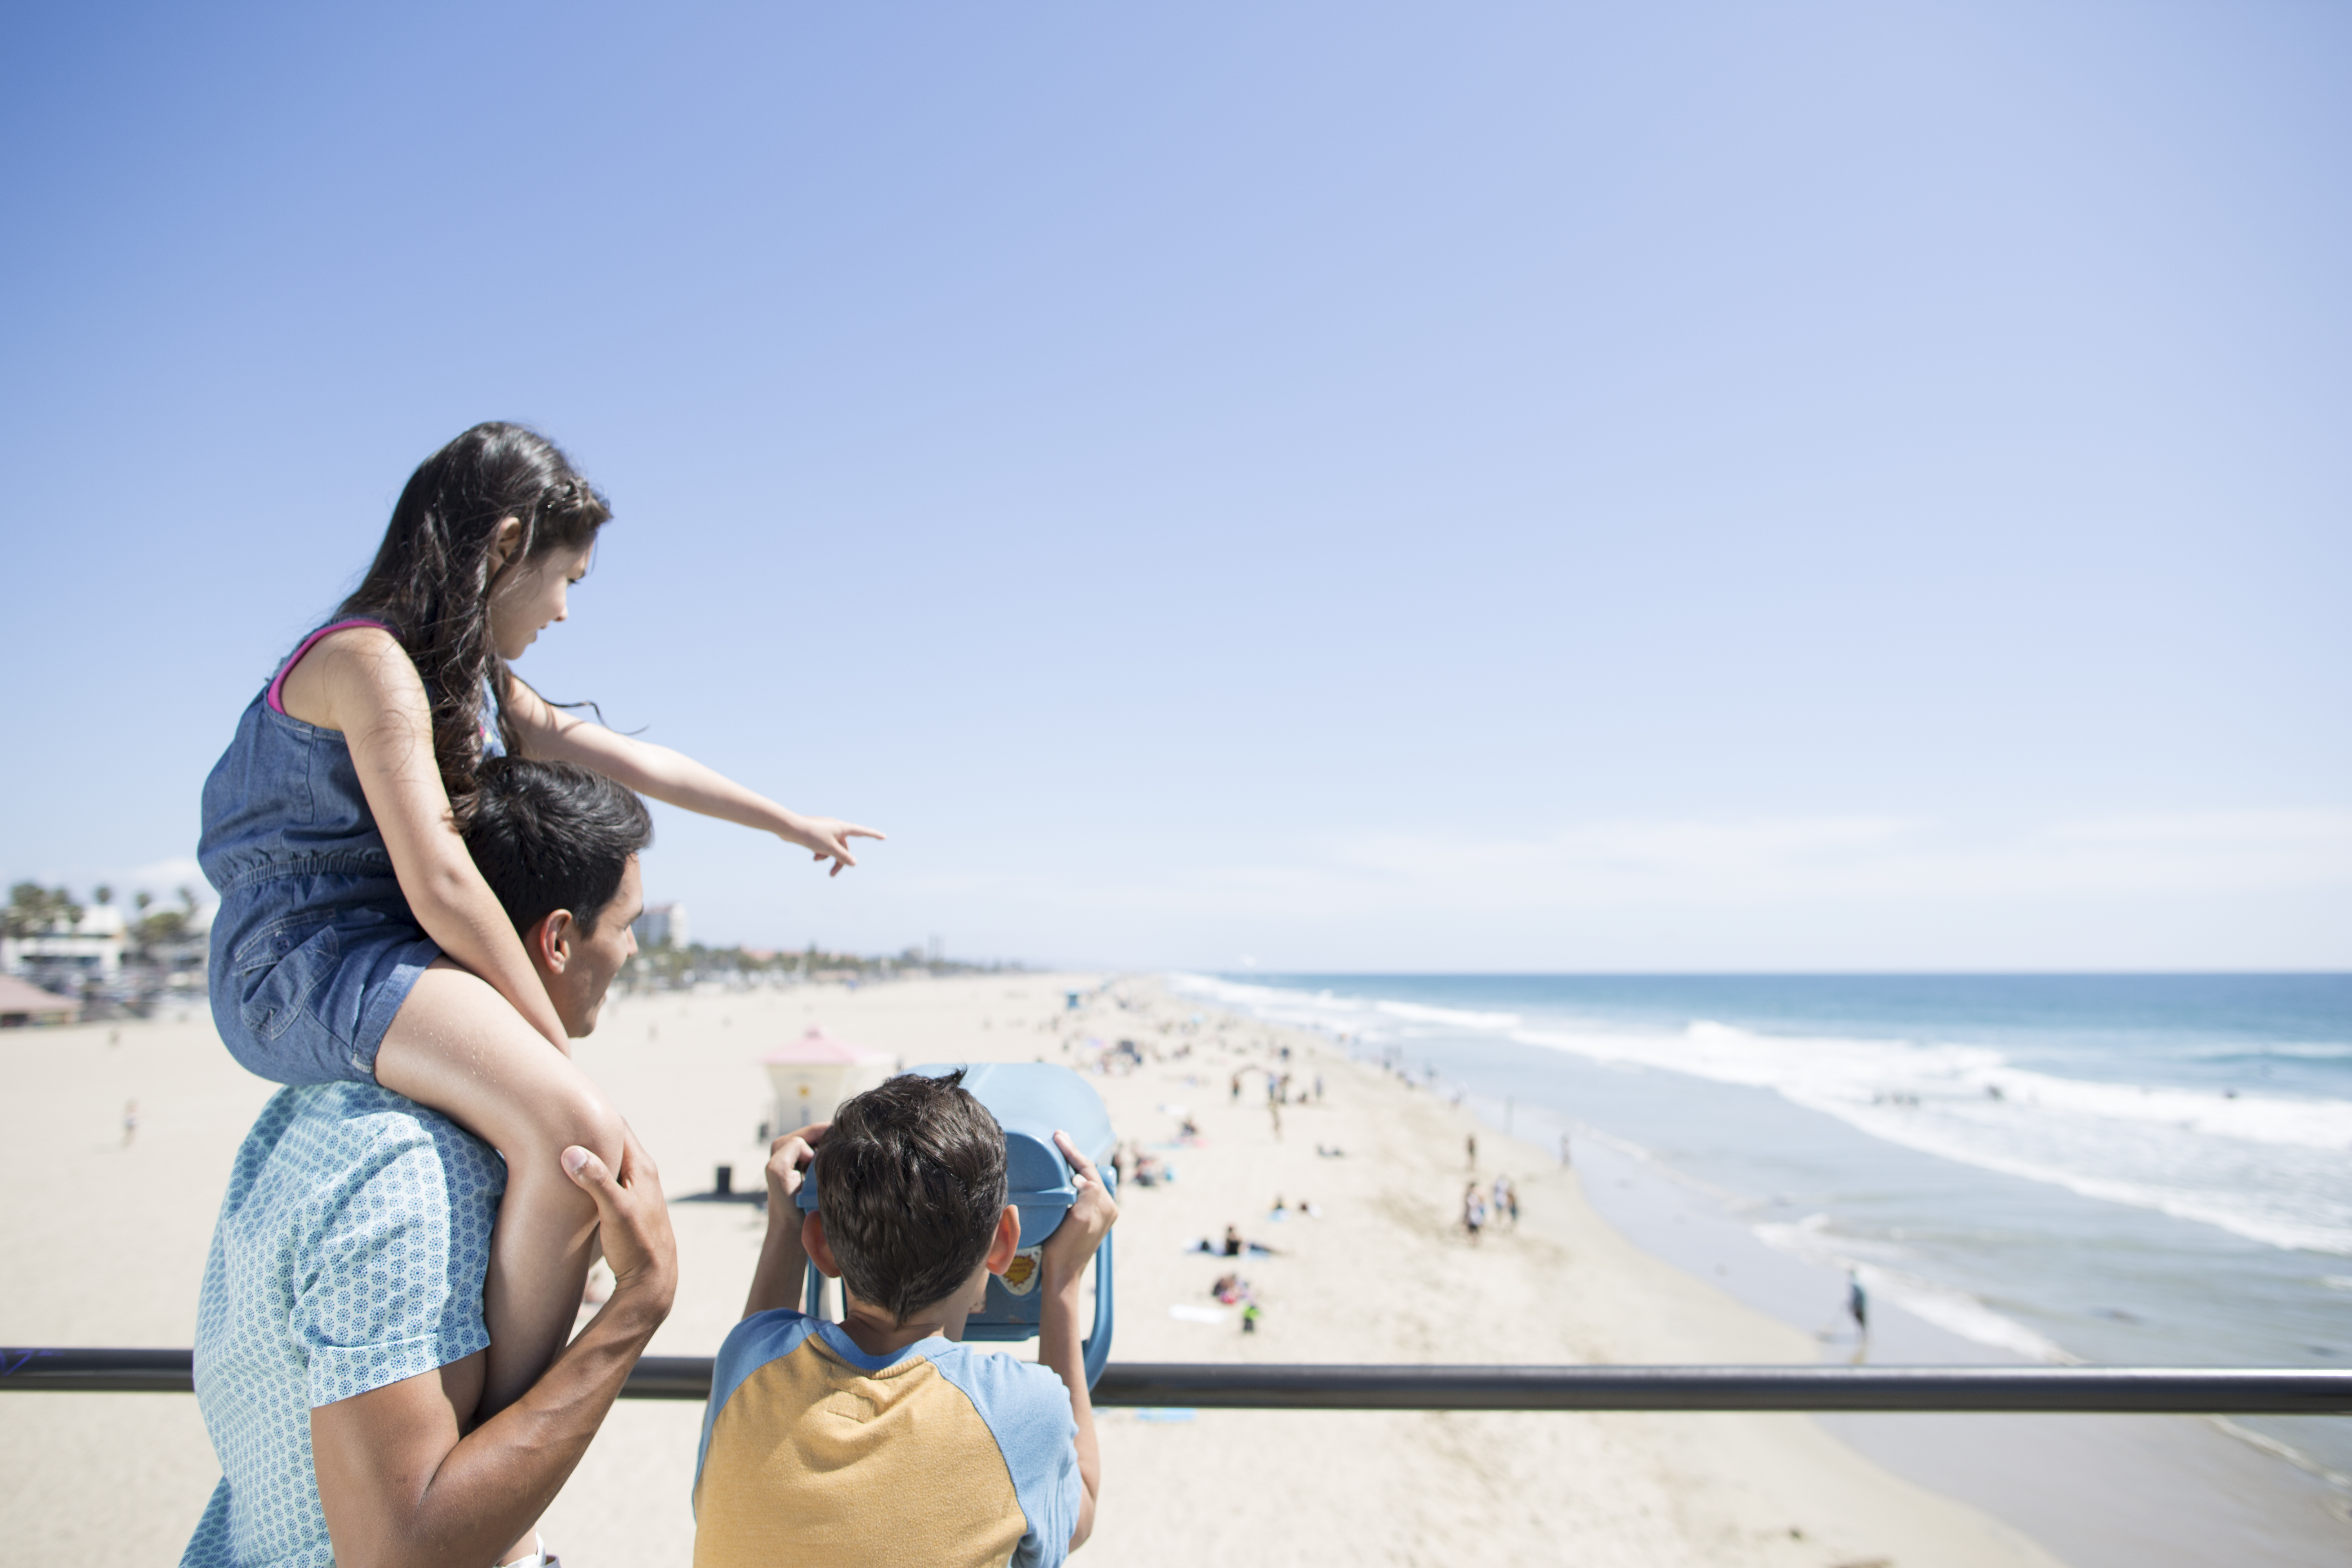 Why Huntington Beach Is The Place To Vacation With Your Family